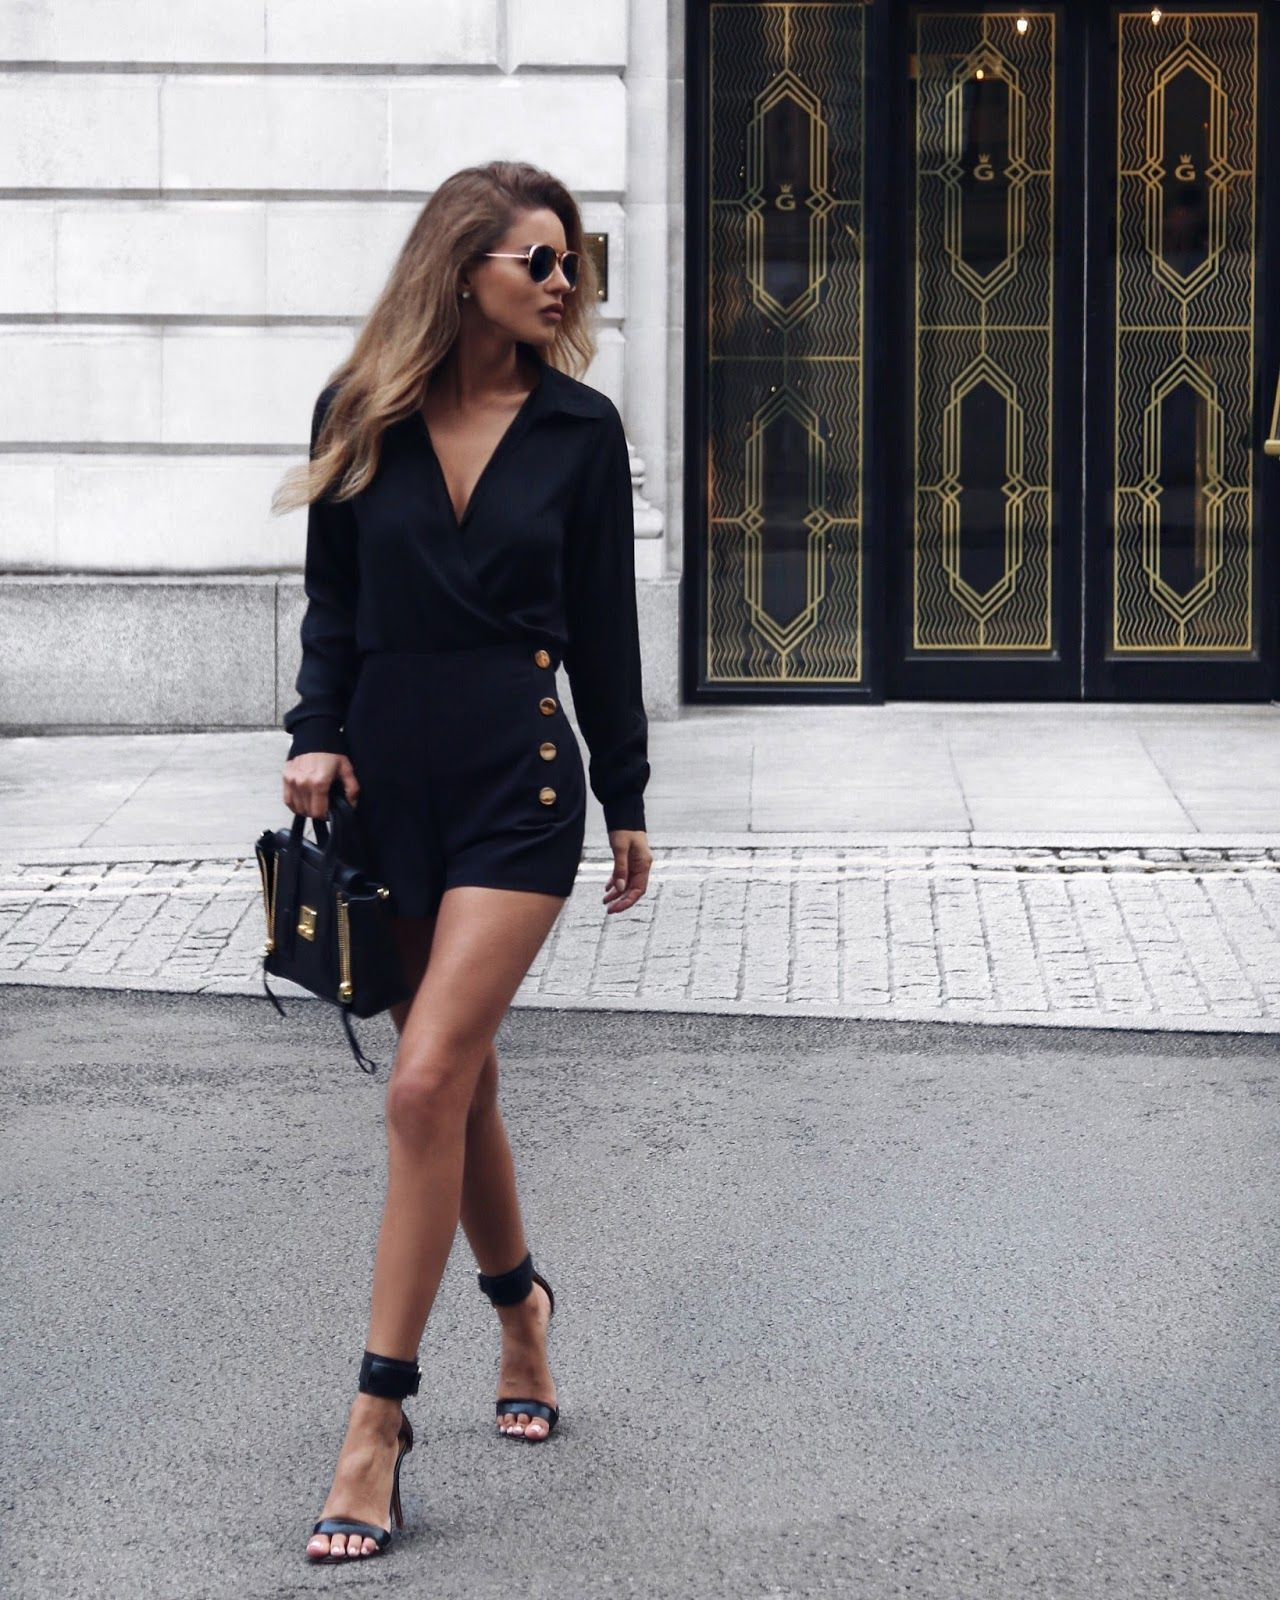 Fashion Beauty And Lifestyle Blogs: Fashion, Fitness And Lifestyle Blog.